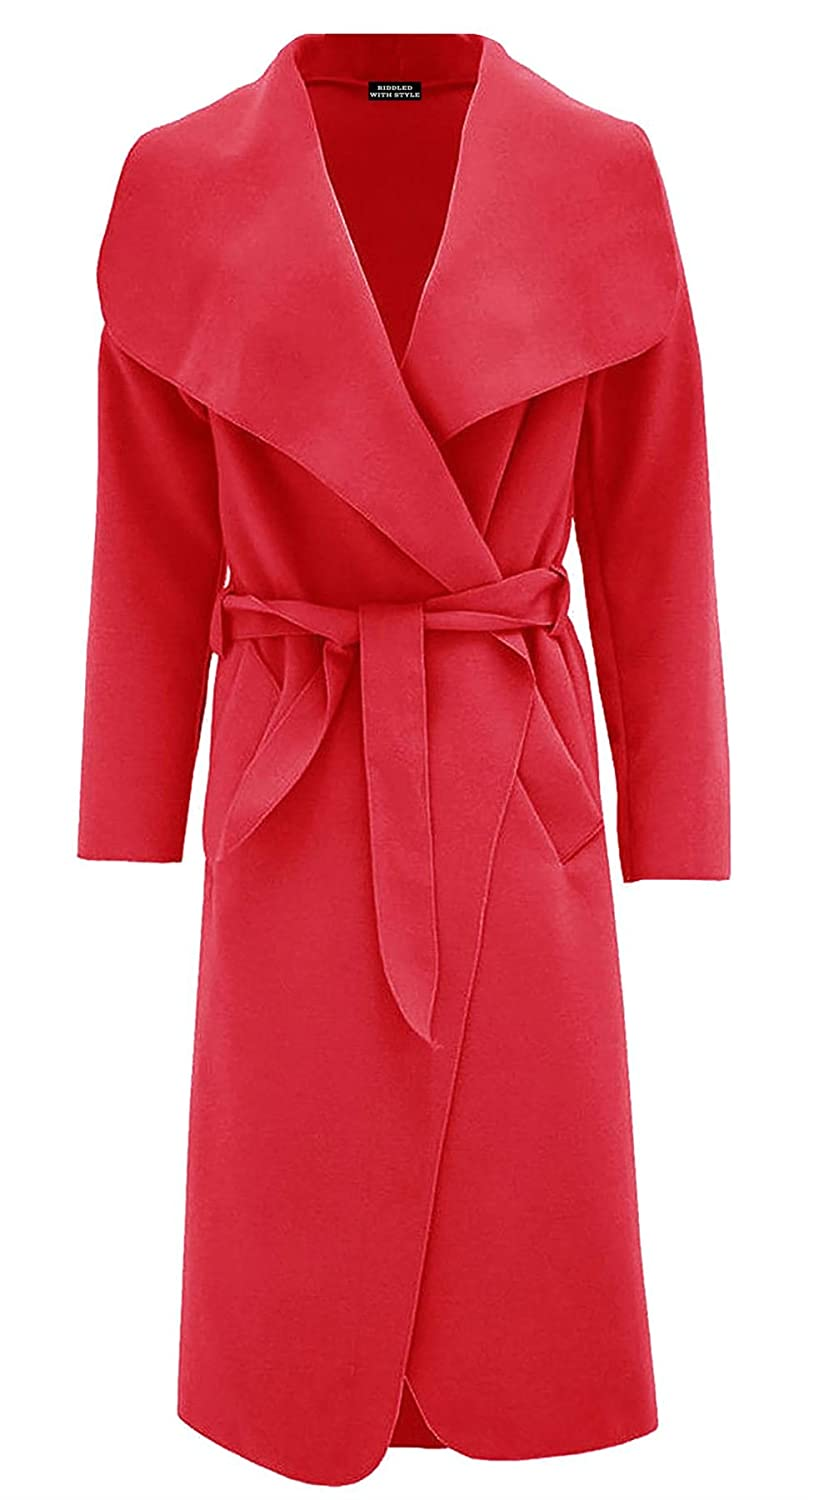 Ladies Plain Long Duster Coat Italian Women Waterfall French Belted Jacket Dress RIDDLED WITH STYLE